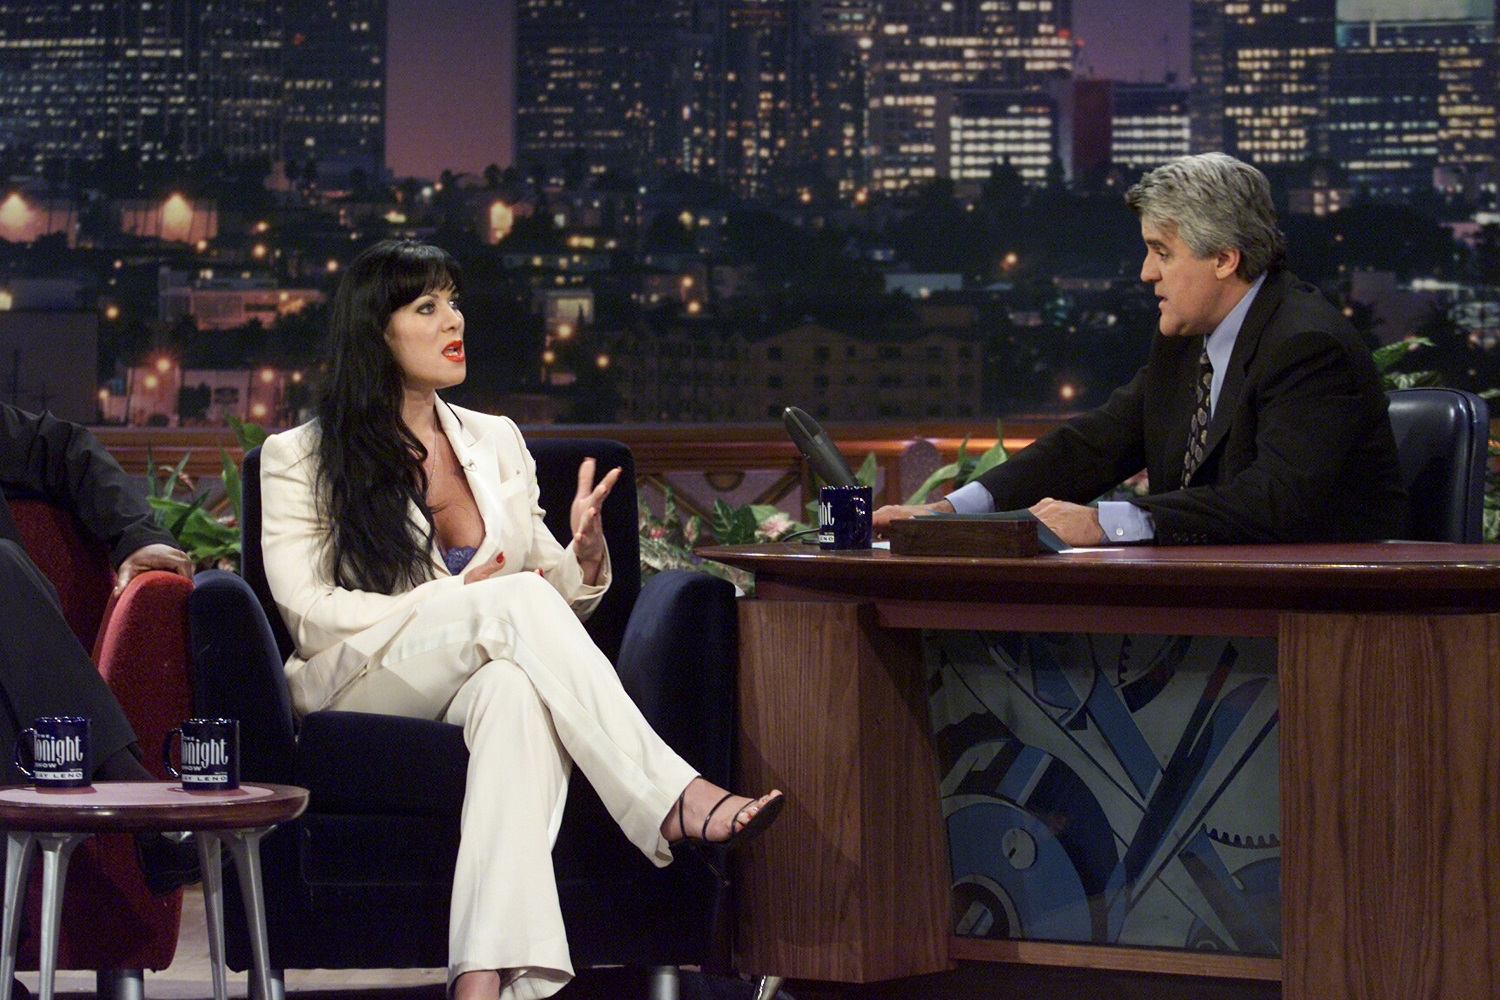 Chyna appeared on 'The Tonight Show' with Jay Leno in 2000. | Paul Drinkwater/NBCU Photo Bank/NBCUniversal via Getty Images